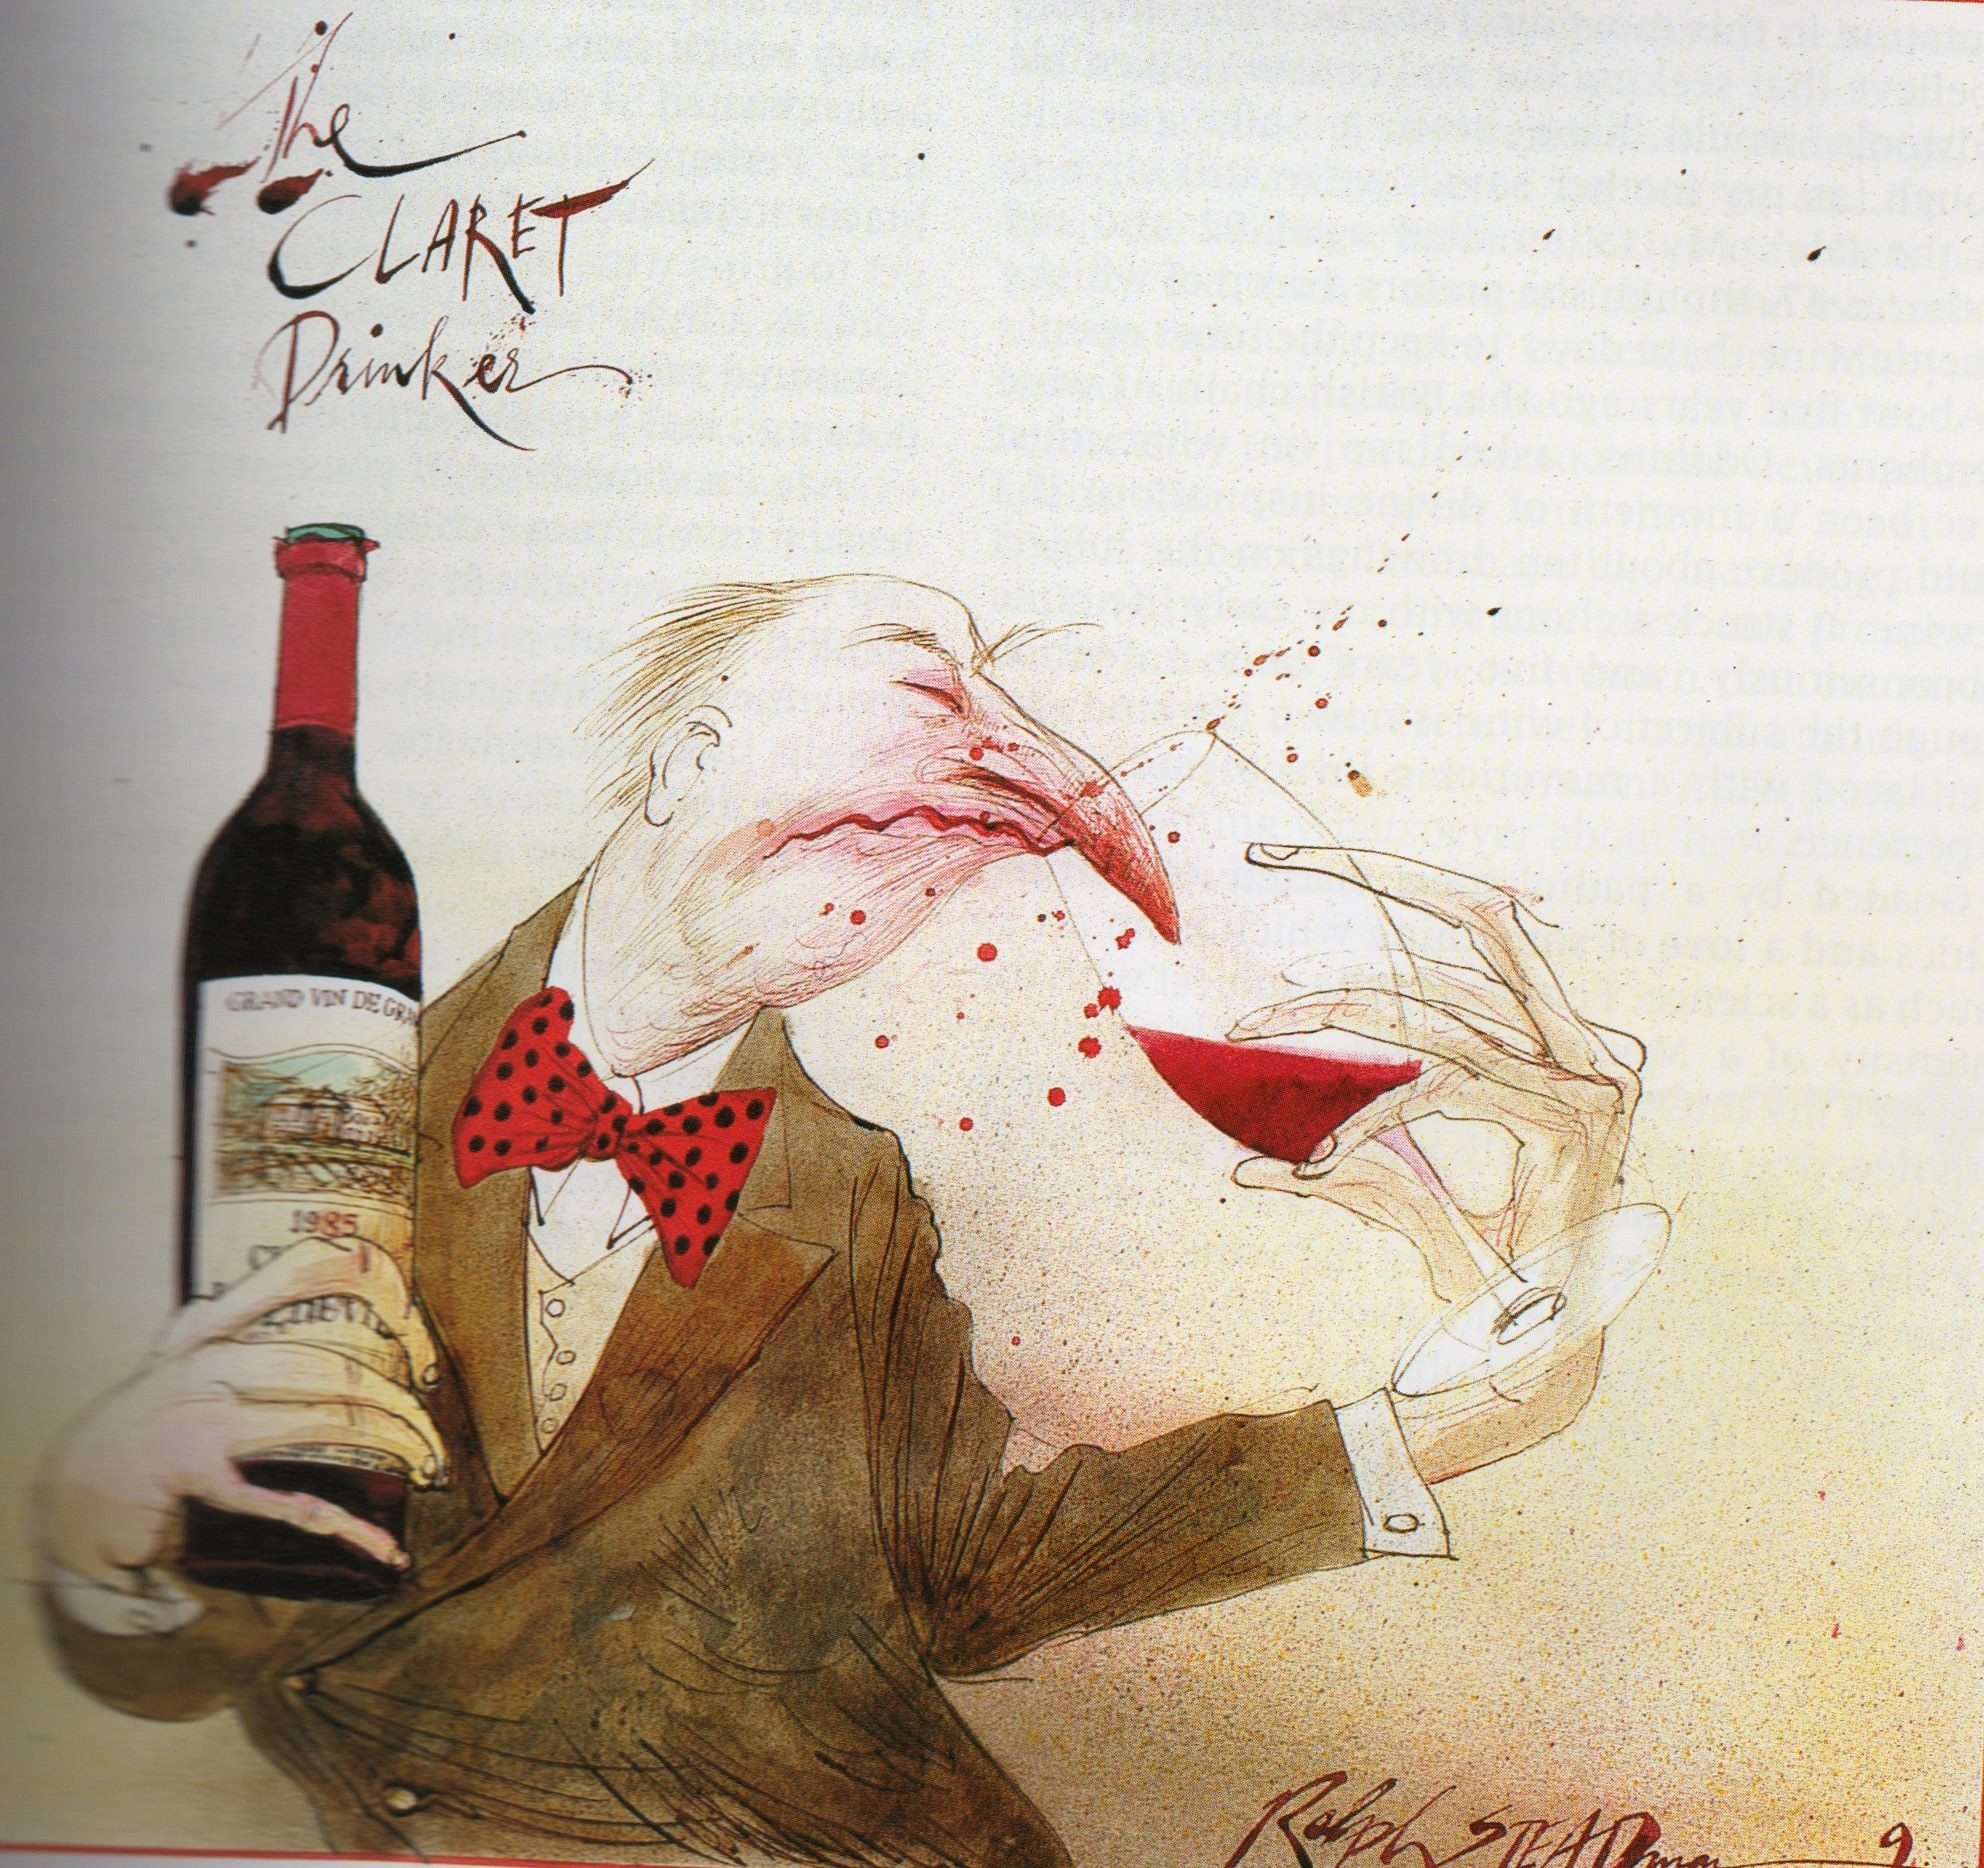 Res: 1984x1868, A good wine has legs, but it takes a good nose to know one! - Ralph Steadman  illustration